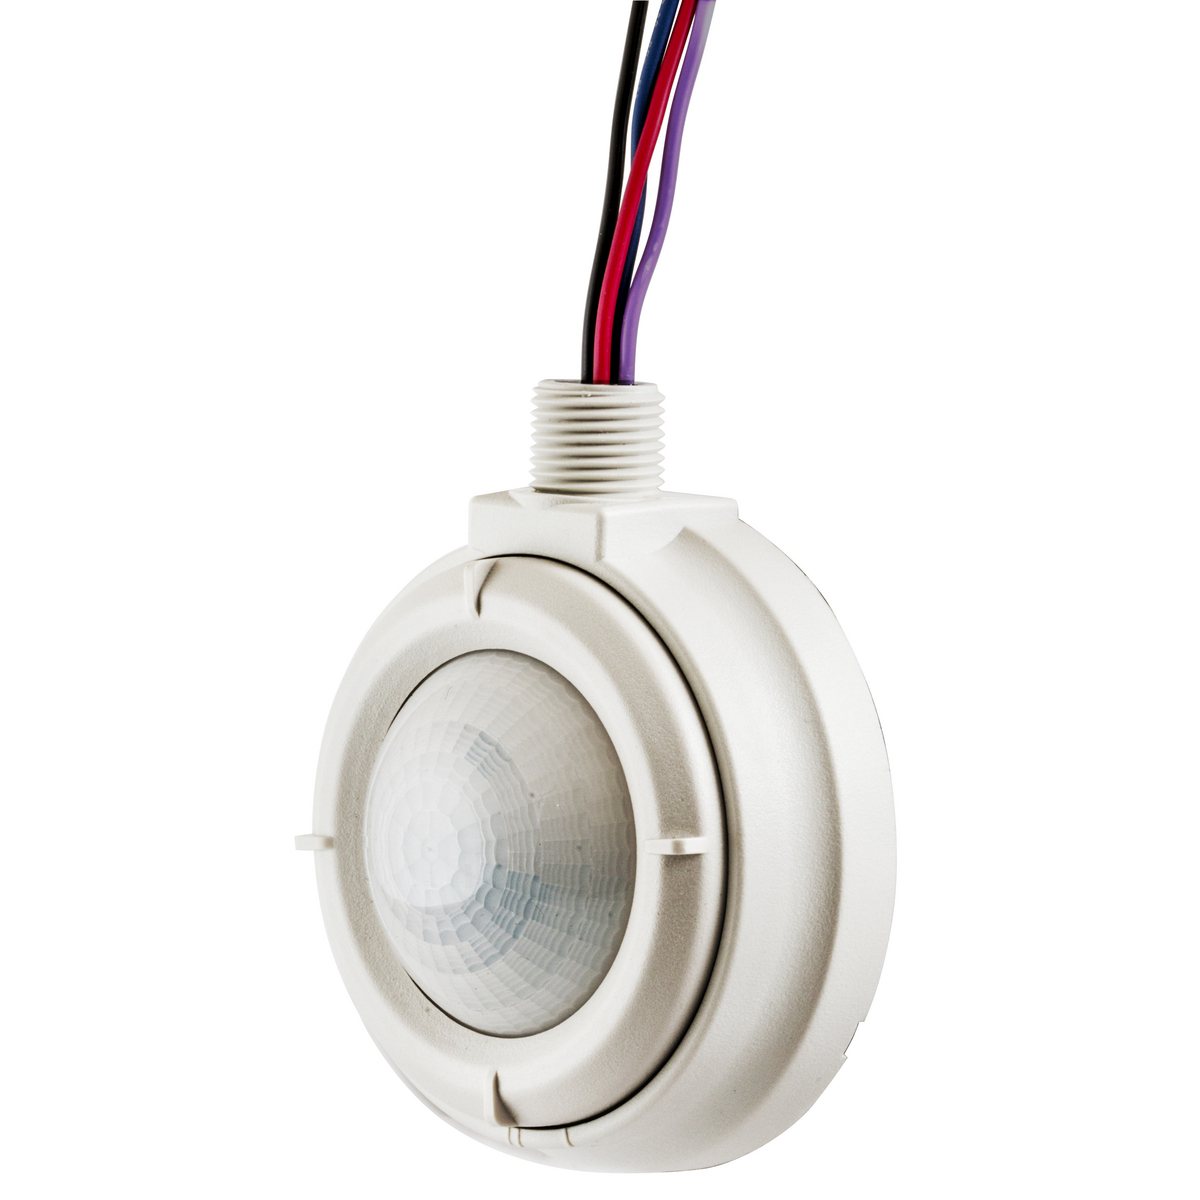 Hubbell HMHB219 120 to 347 VAC Fluorescent Daylight Harvesting Passive Infrared High Bay Wall Mount Sensor